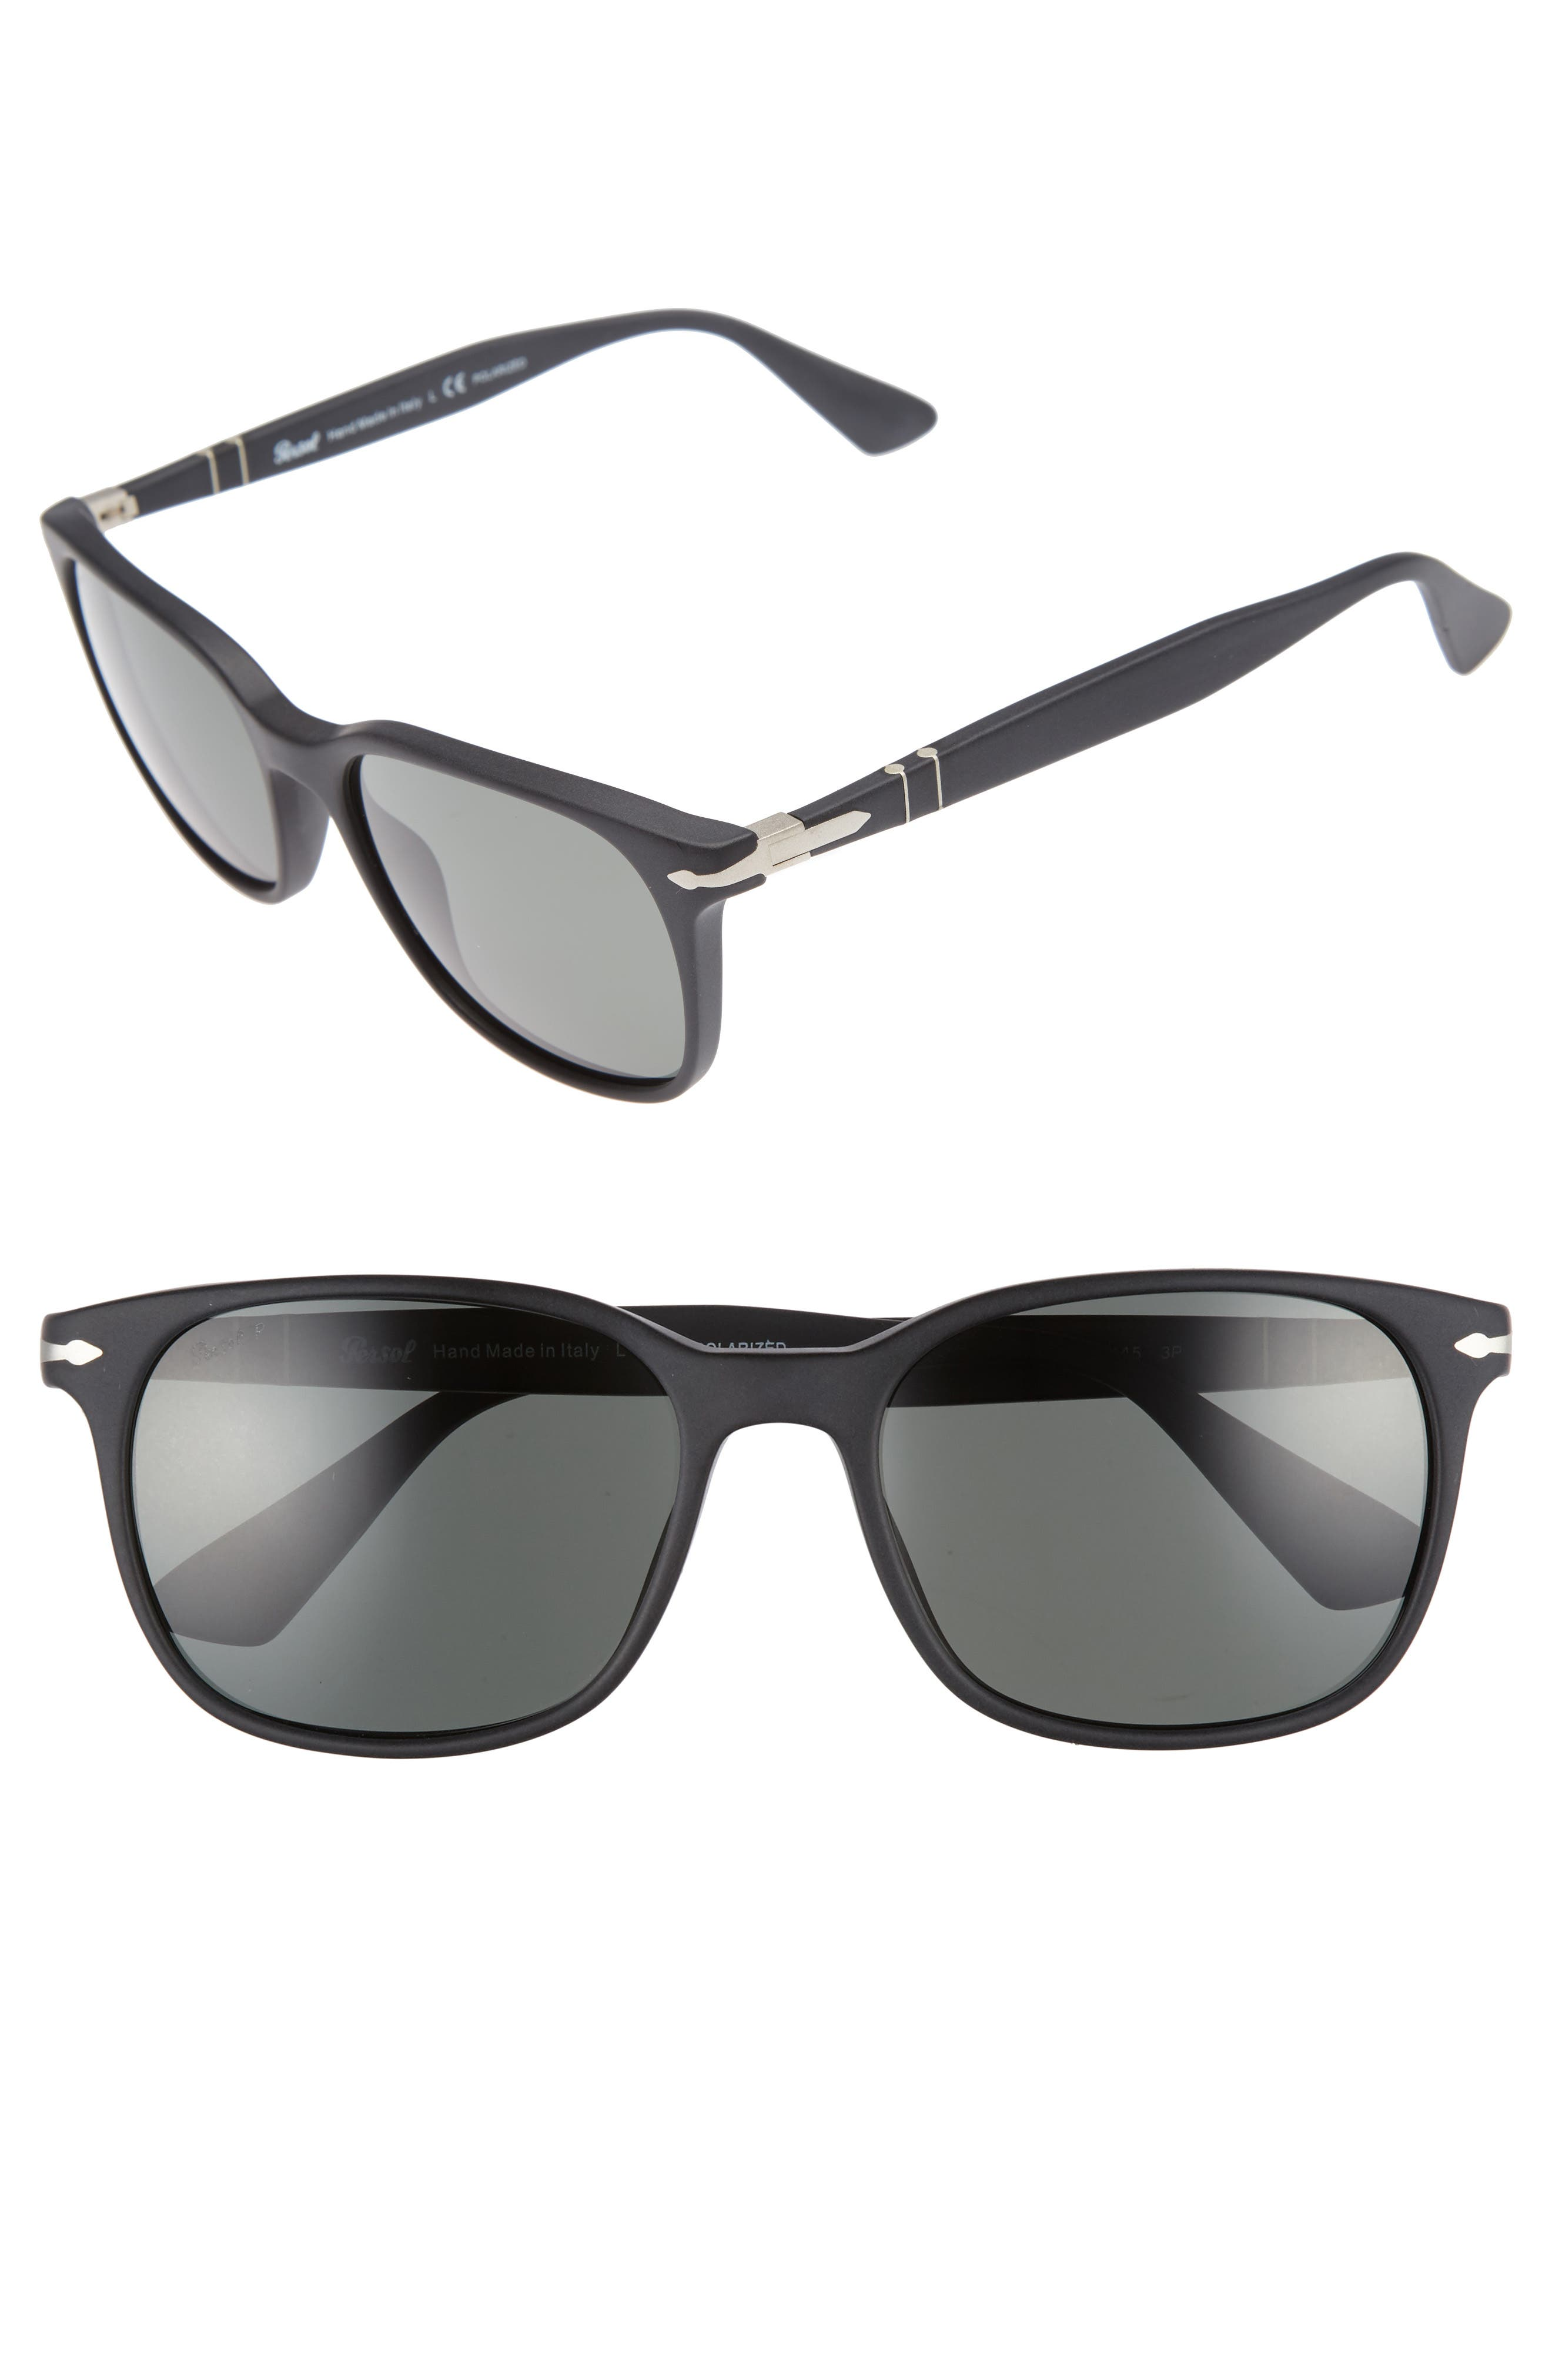 Main Image - Persol Officina 56mm Polarized Sungasses